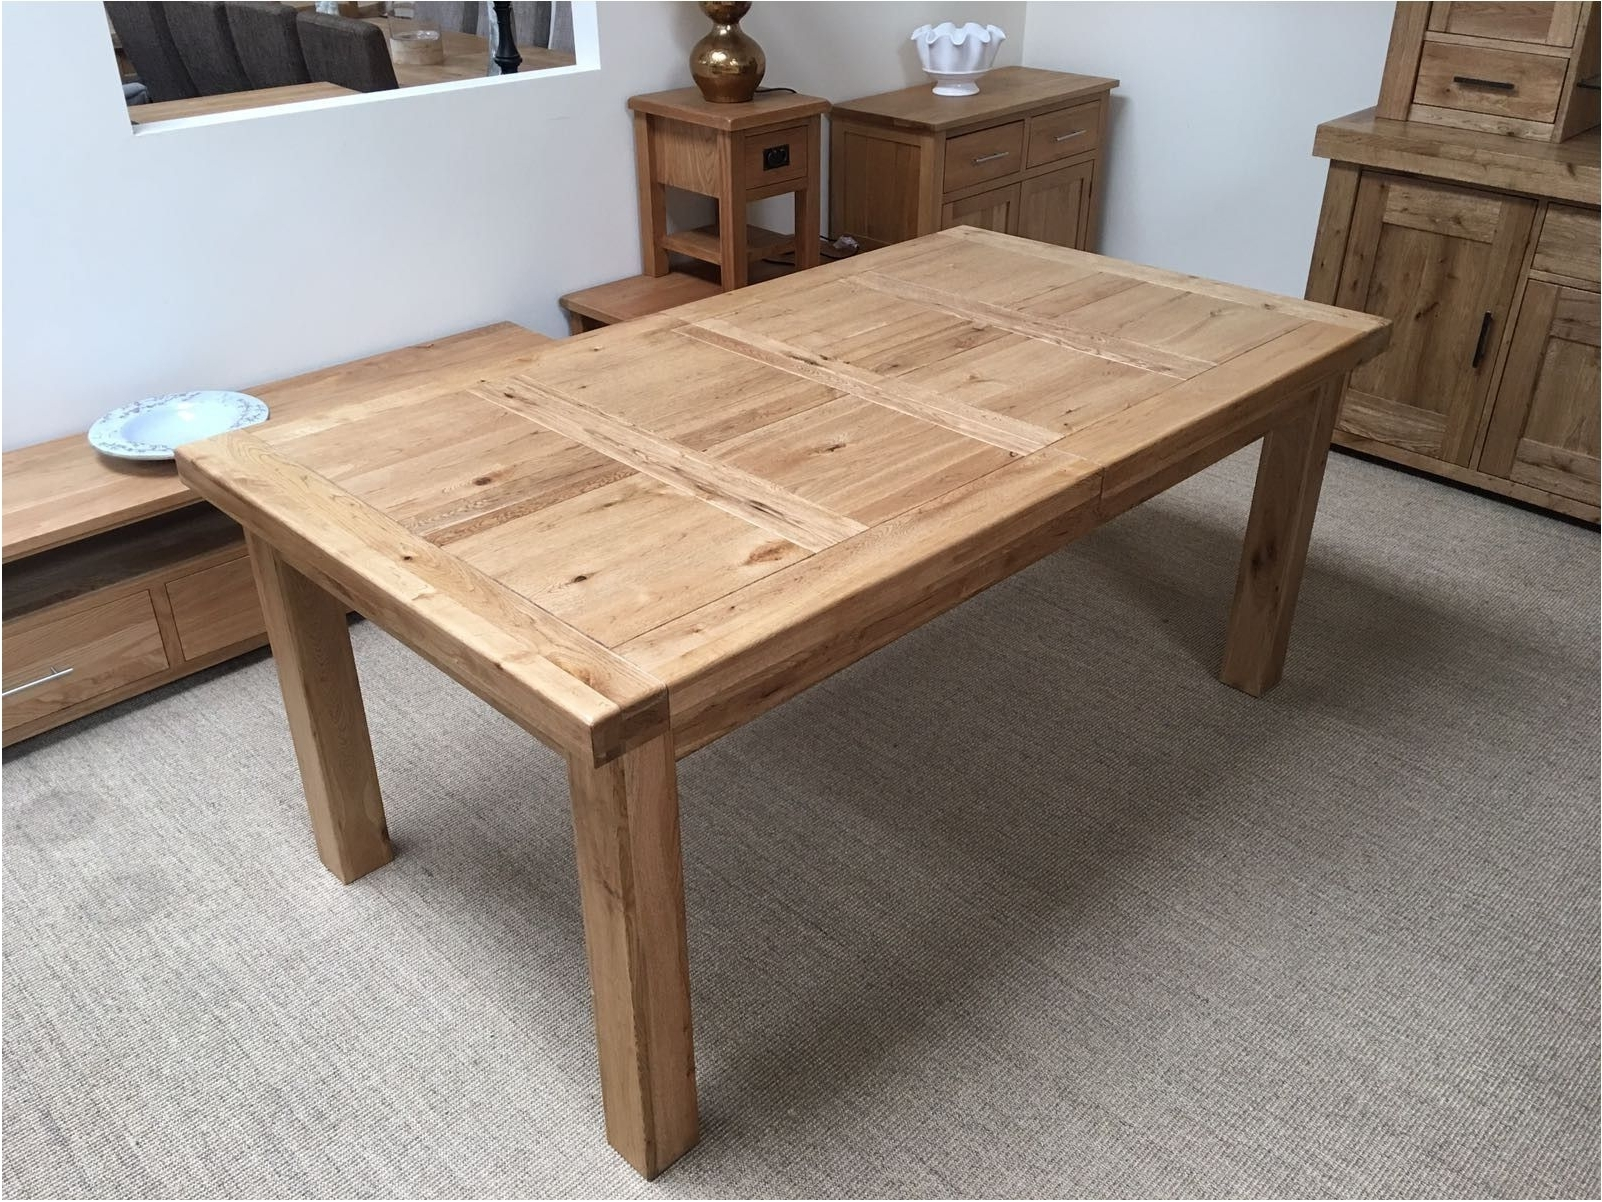 Fashionable Extending Solid Oak Dining Tables With Astounding Oxford Solid Oak Extending Dining Table Oak Furniture (View 9 of 25)